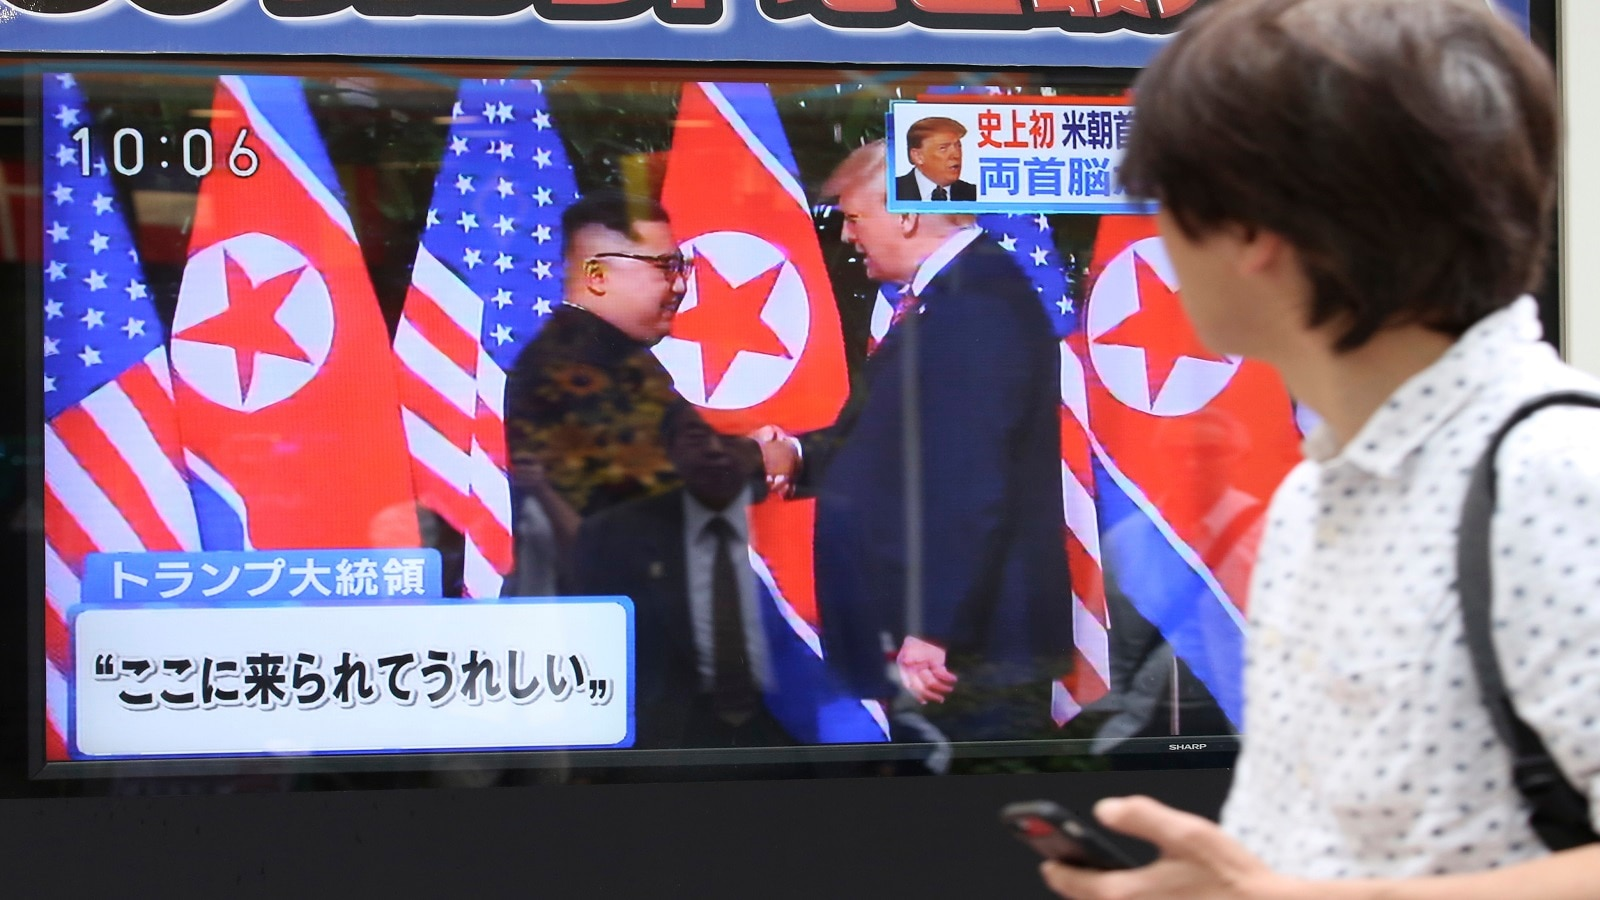 A man looks at a TV screen showing Kim Jong Un, left, and Donald Trump shaking hands before their meeting in Singapore, in Tokyo. Japanese letters read: